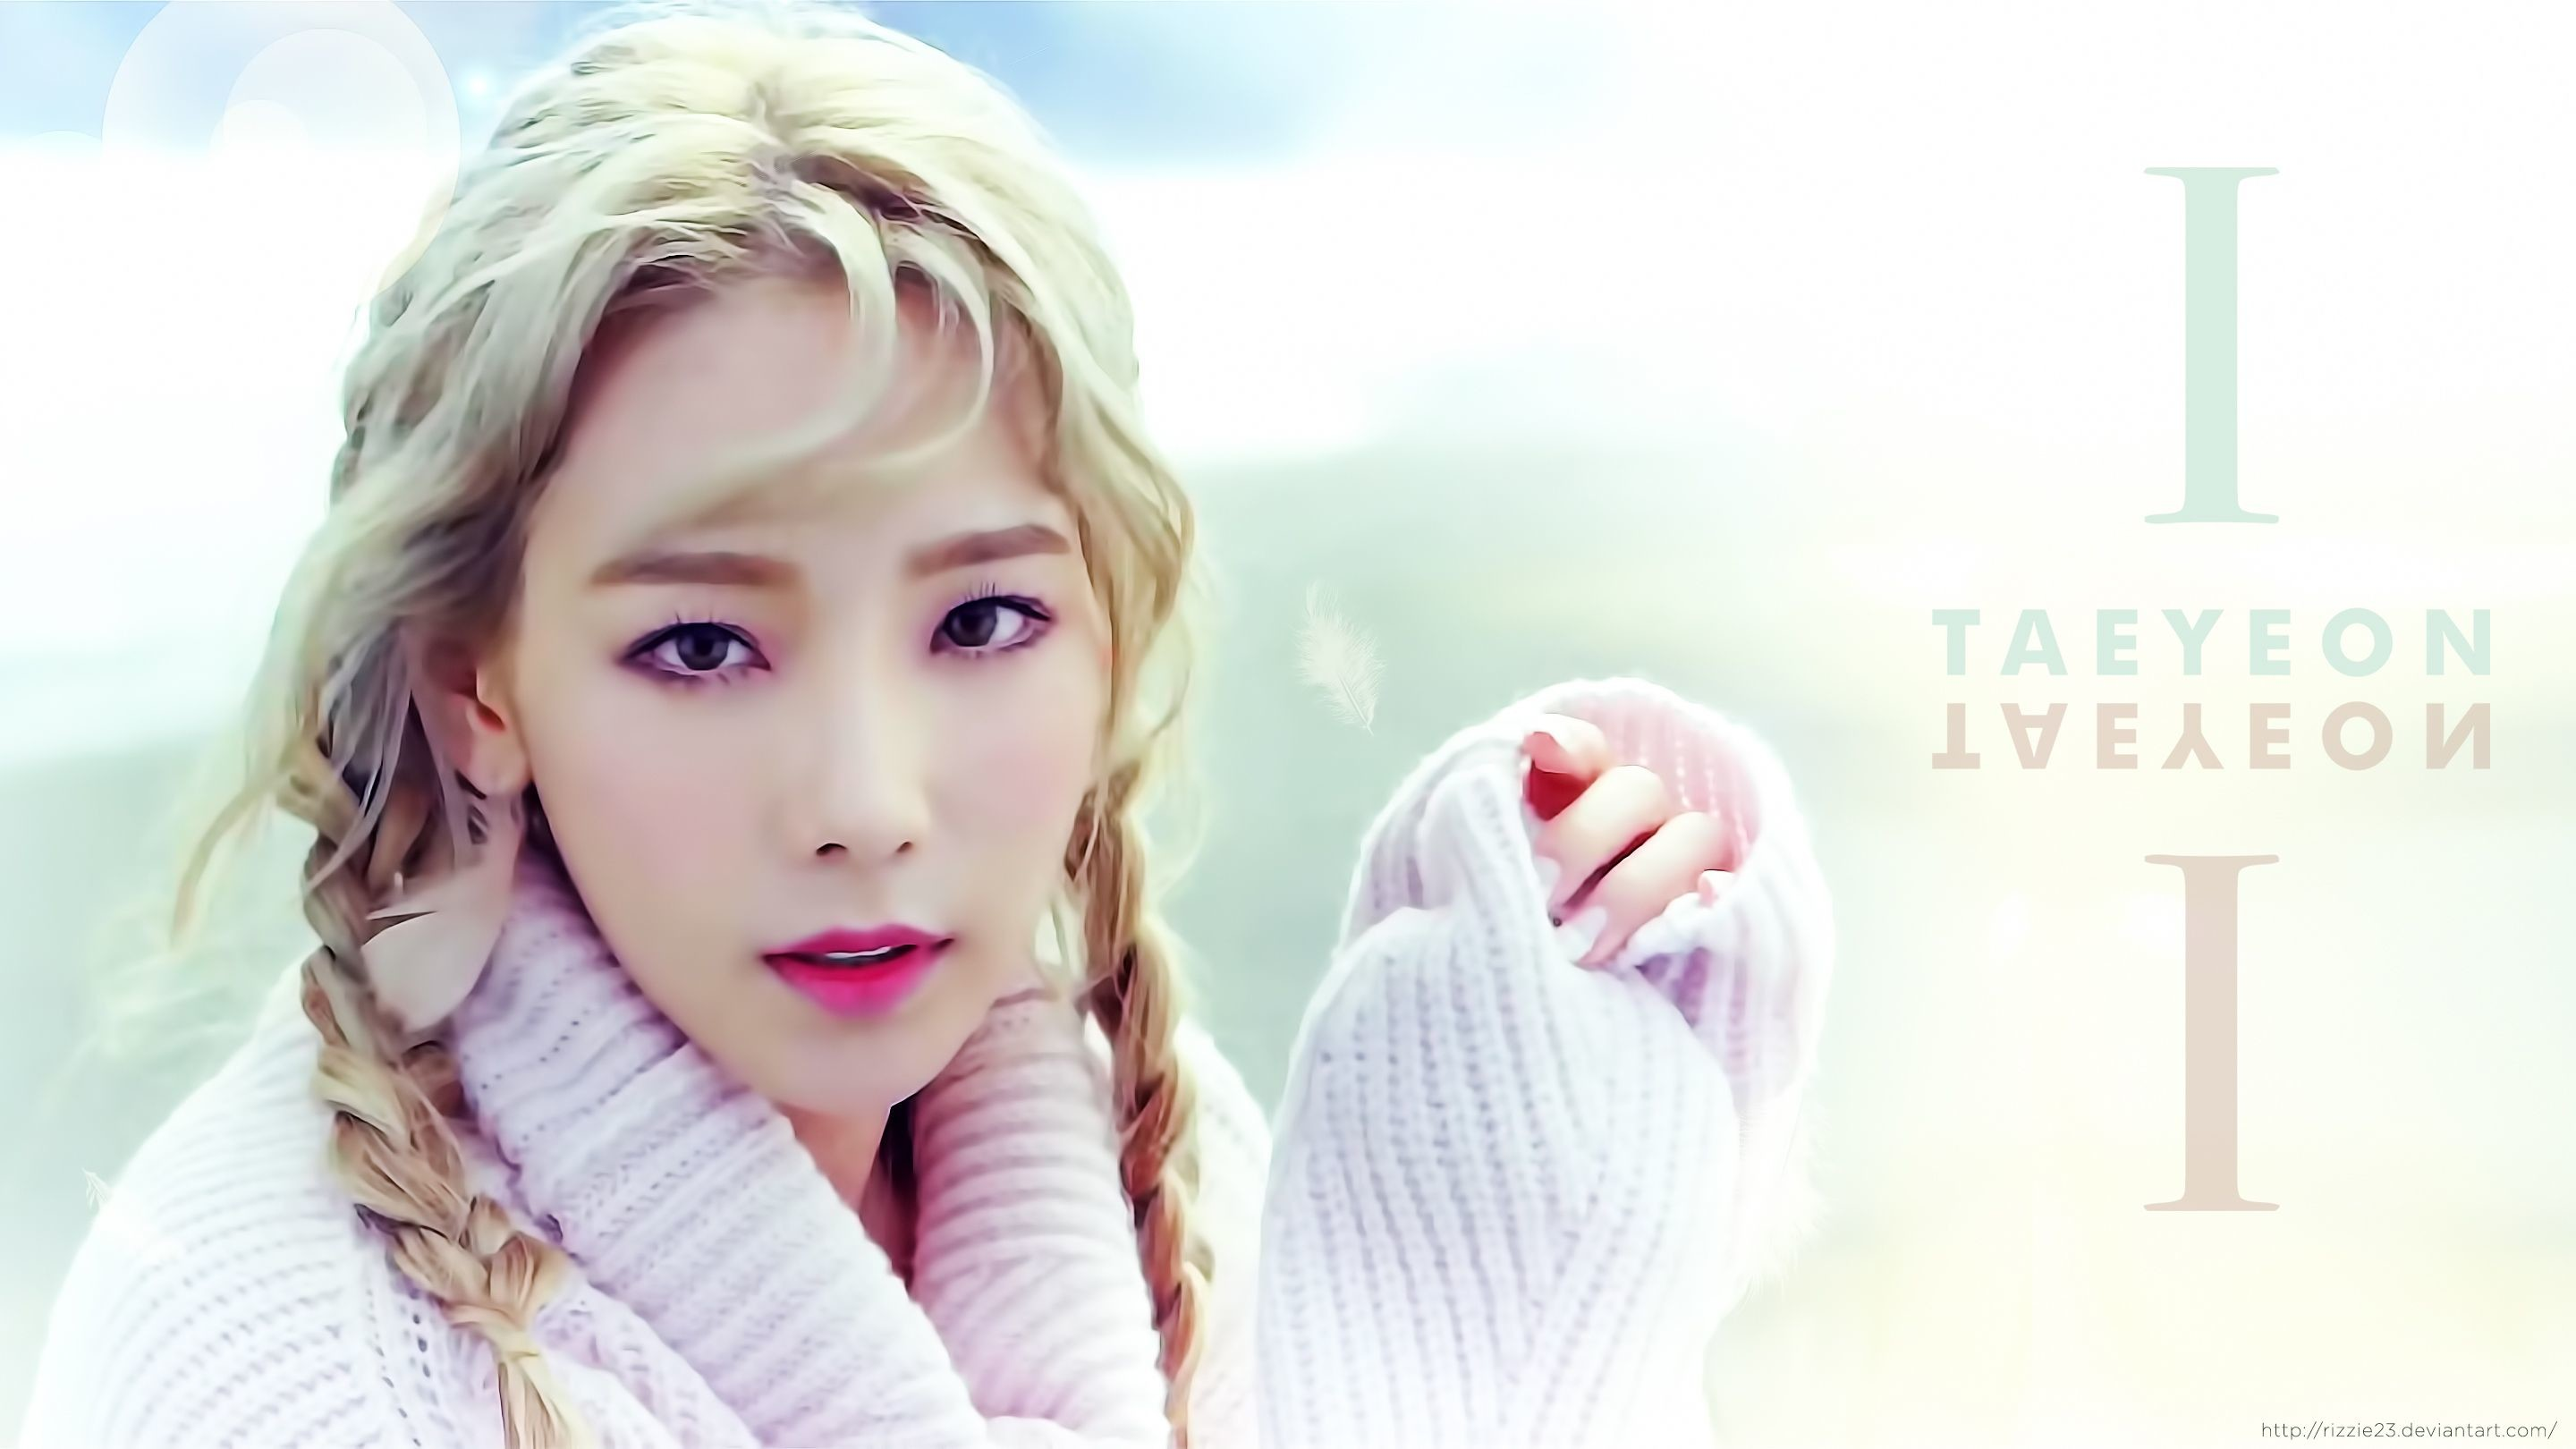 Res: 2880x1620, Soshipapers - SNSD Taeyeon wallpaper